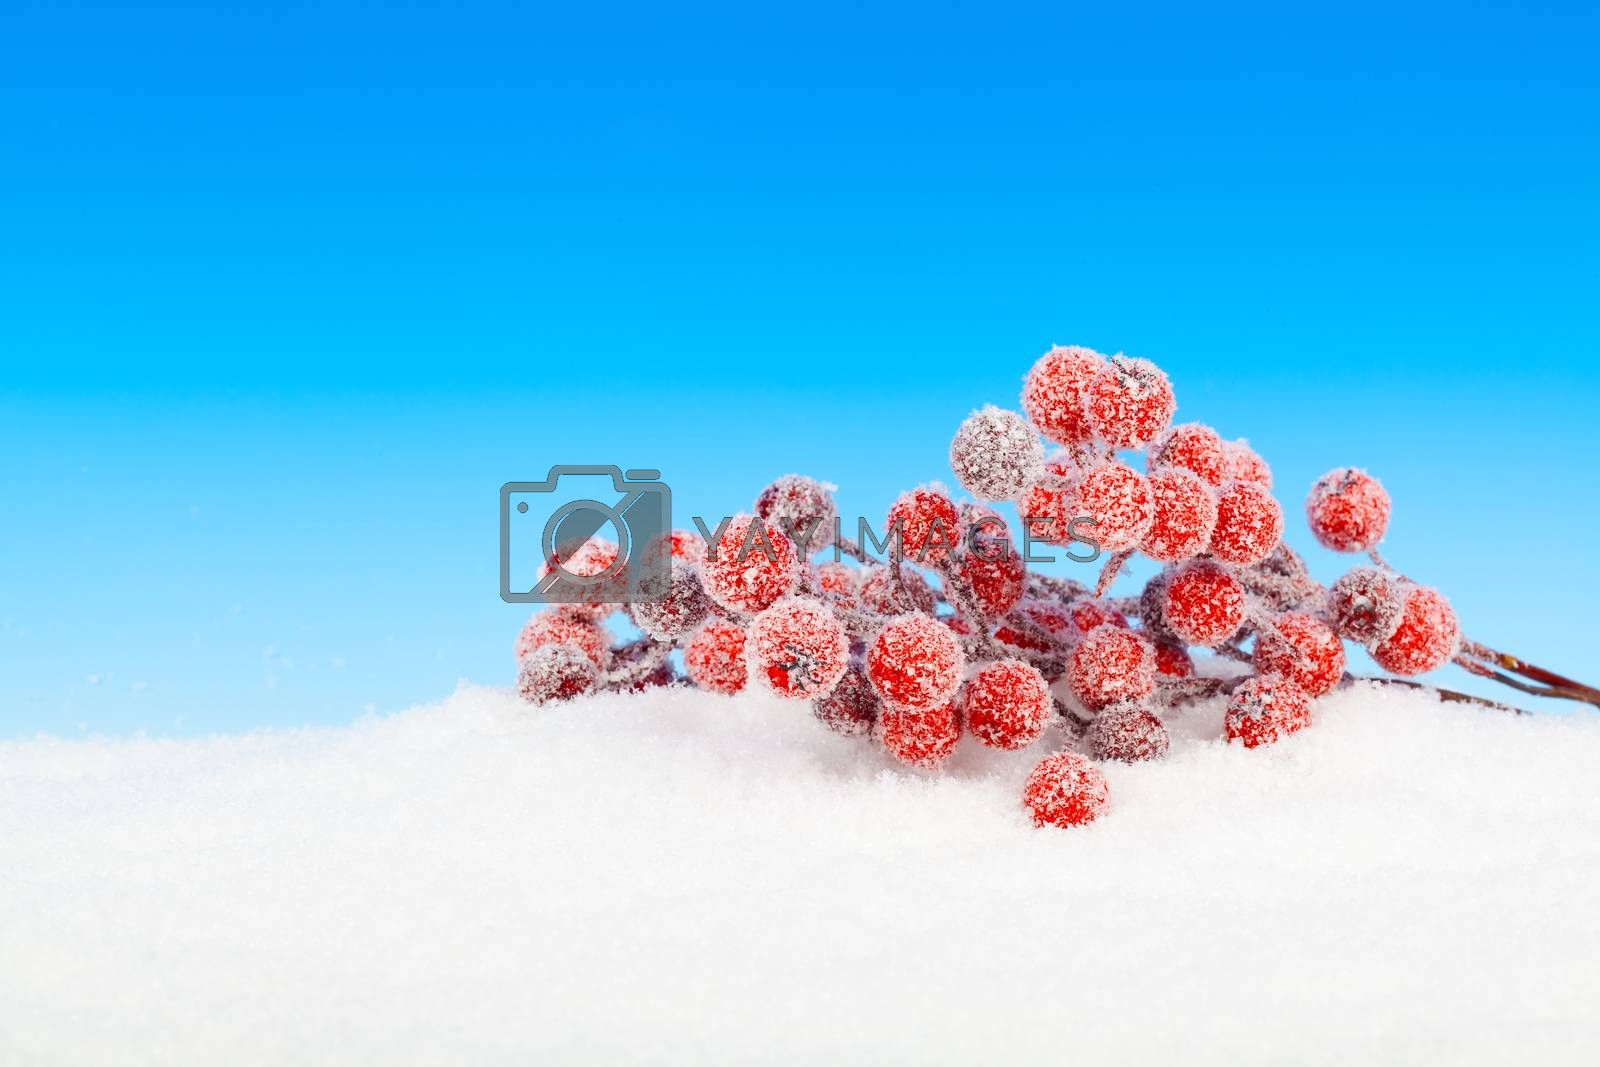 Christmas wreath on show, on blue background by motorolka